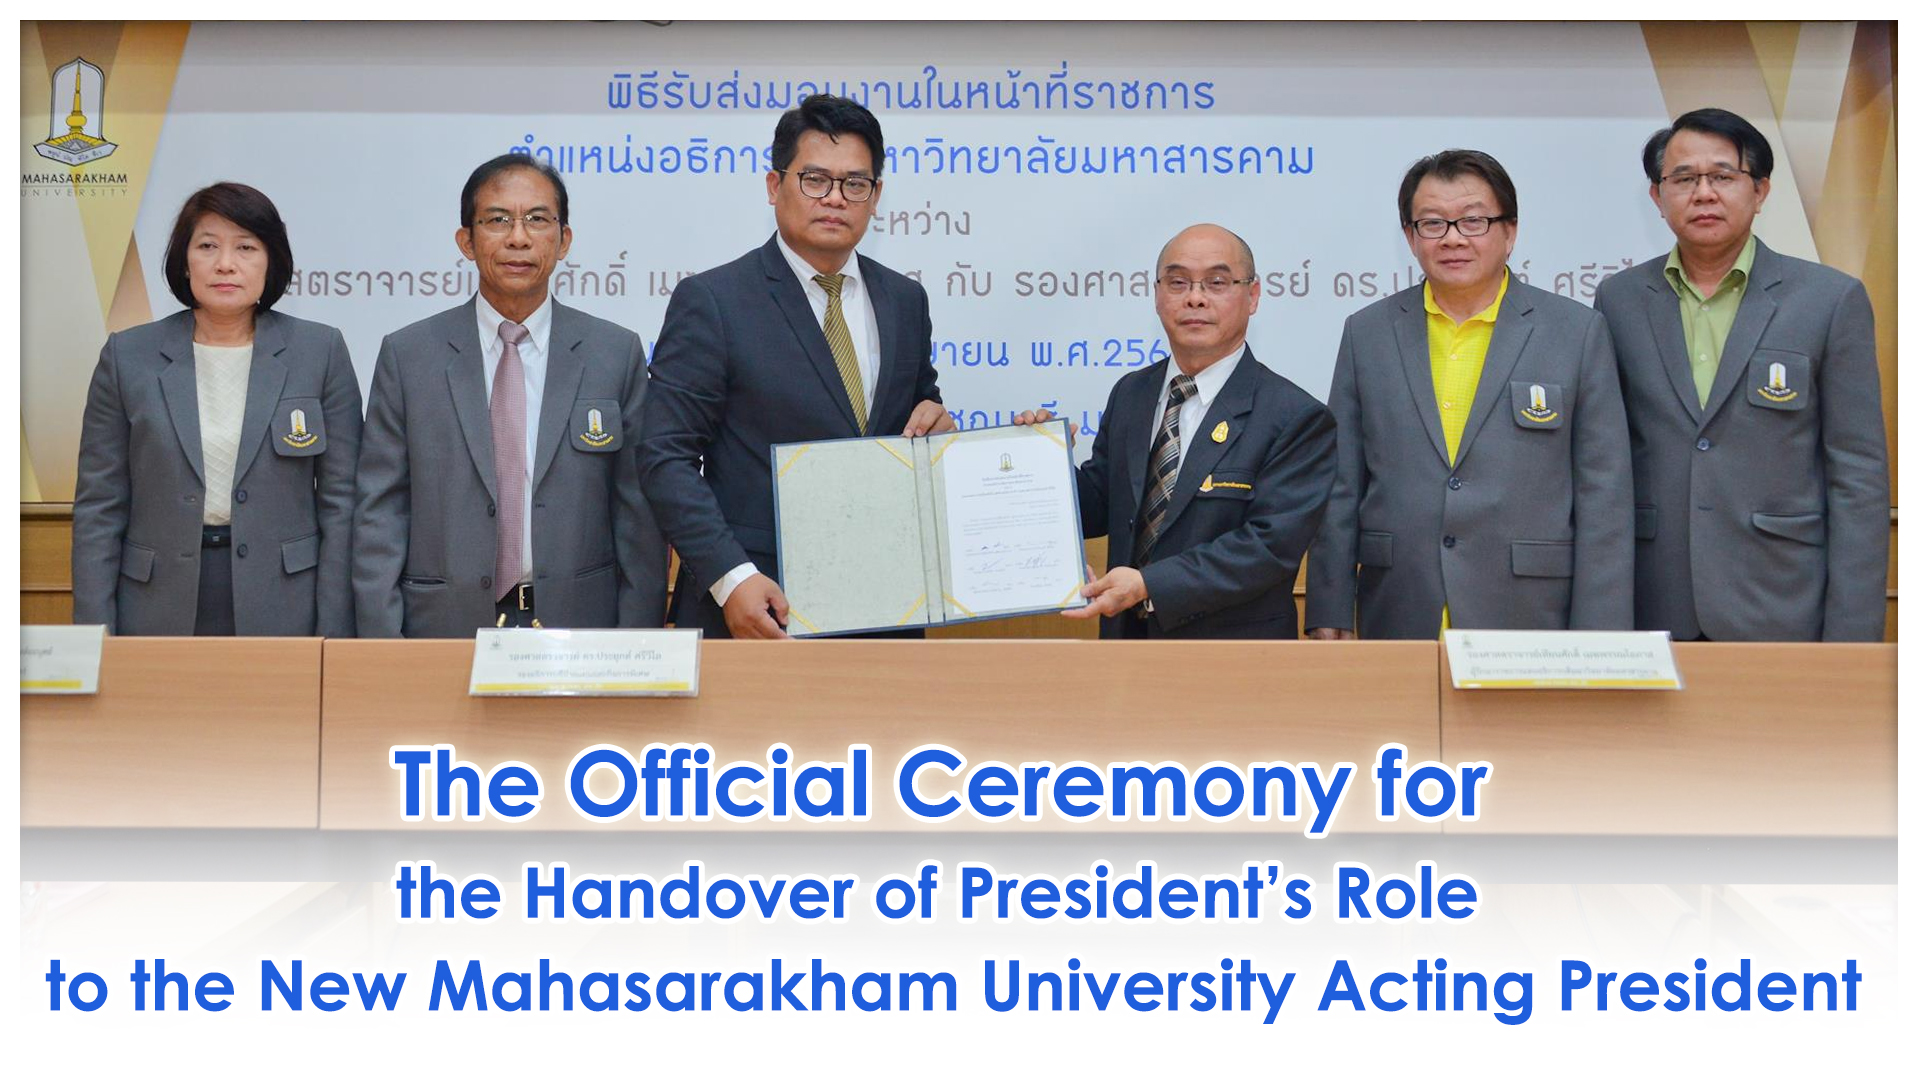 The Official Ceremony for the Handover of President's Role to the New Mahasarakham University Acting President